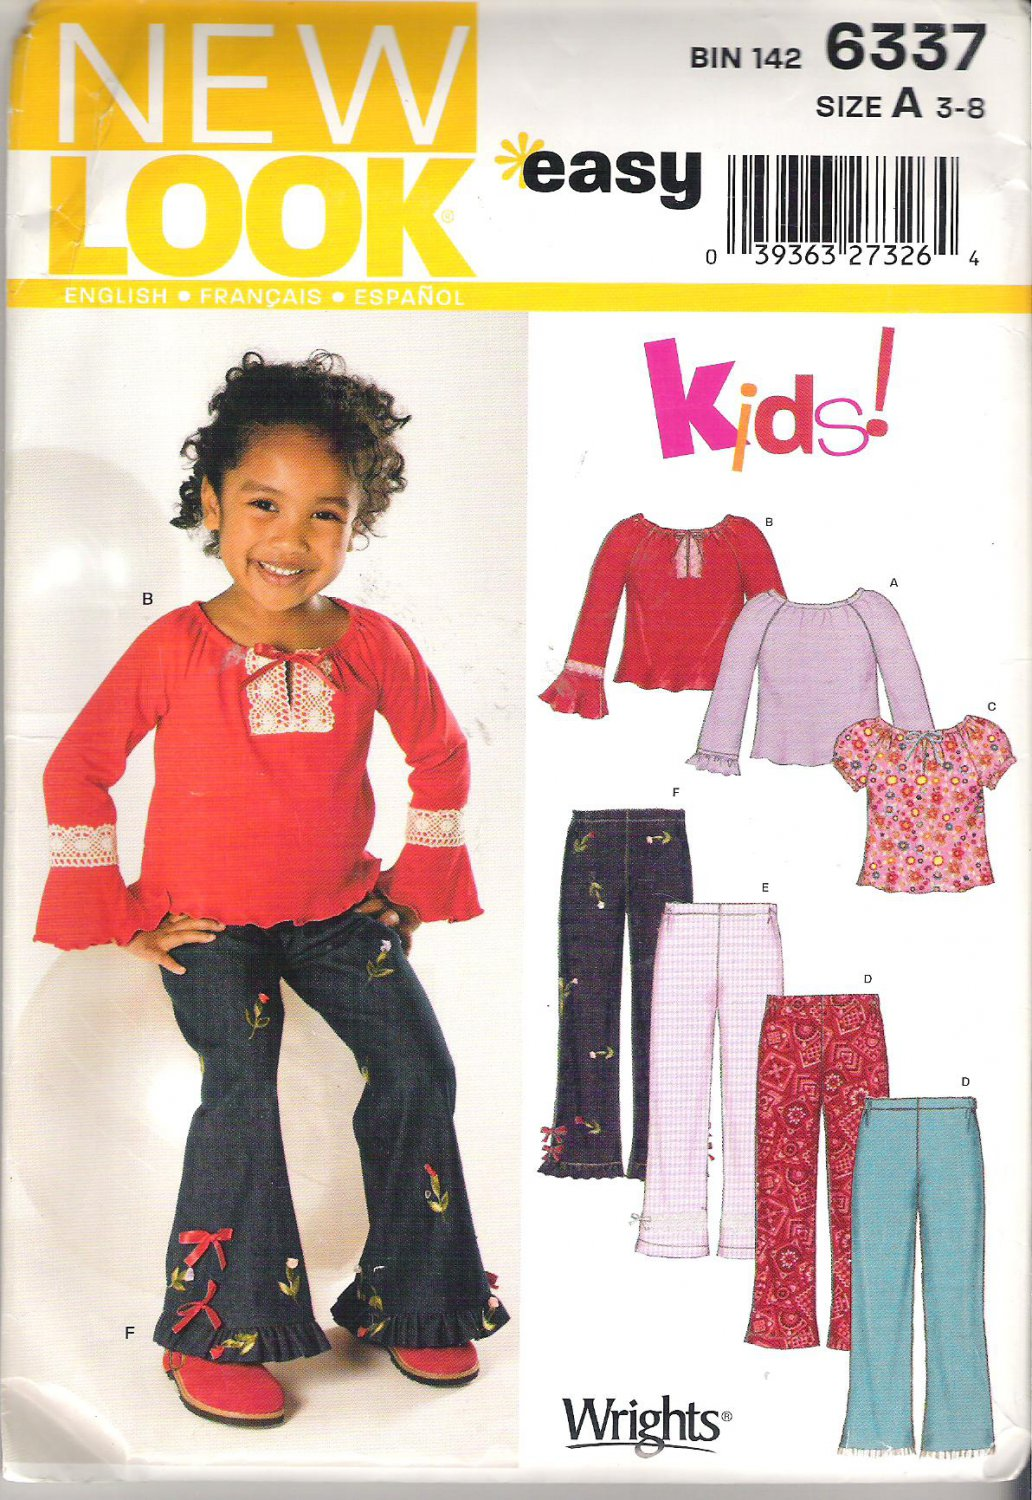 New Look Kids! Girls Vintage Look Pattern Peasant Top Pants  Size 3-8  Uncut